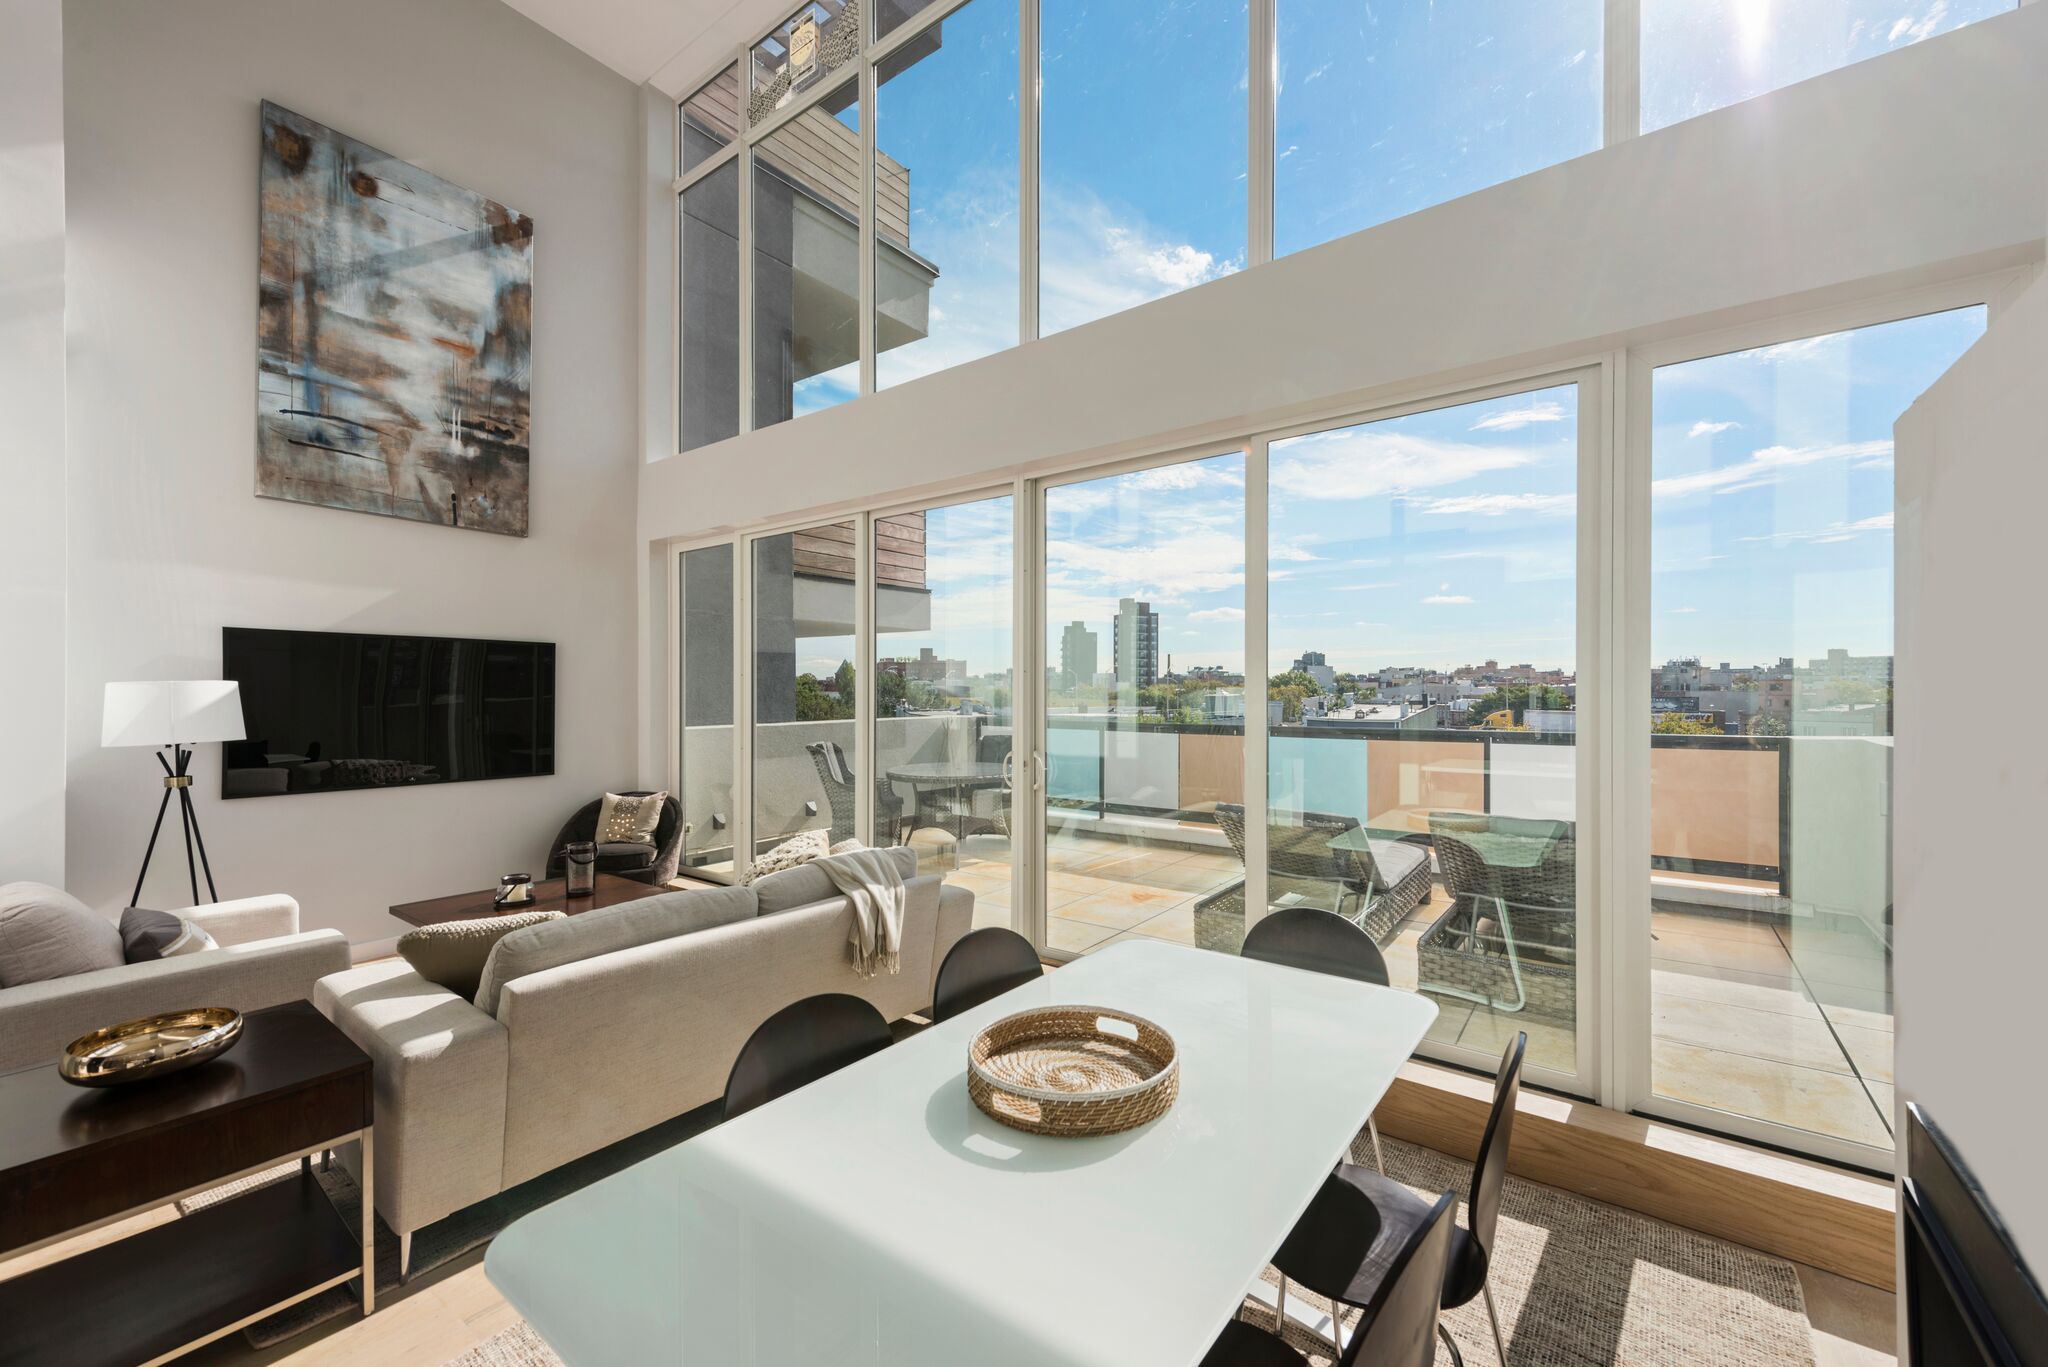 Alternate View of this Condo's Living Room